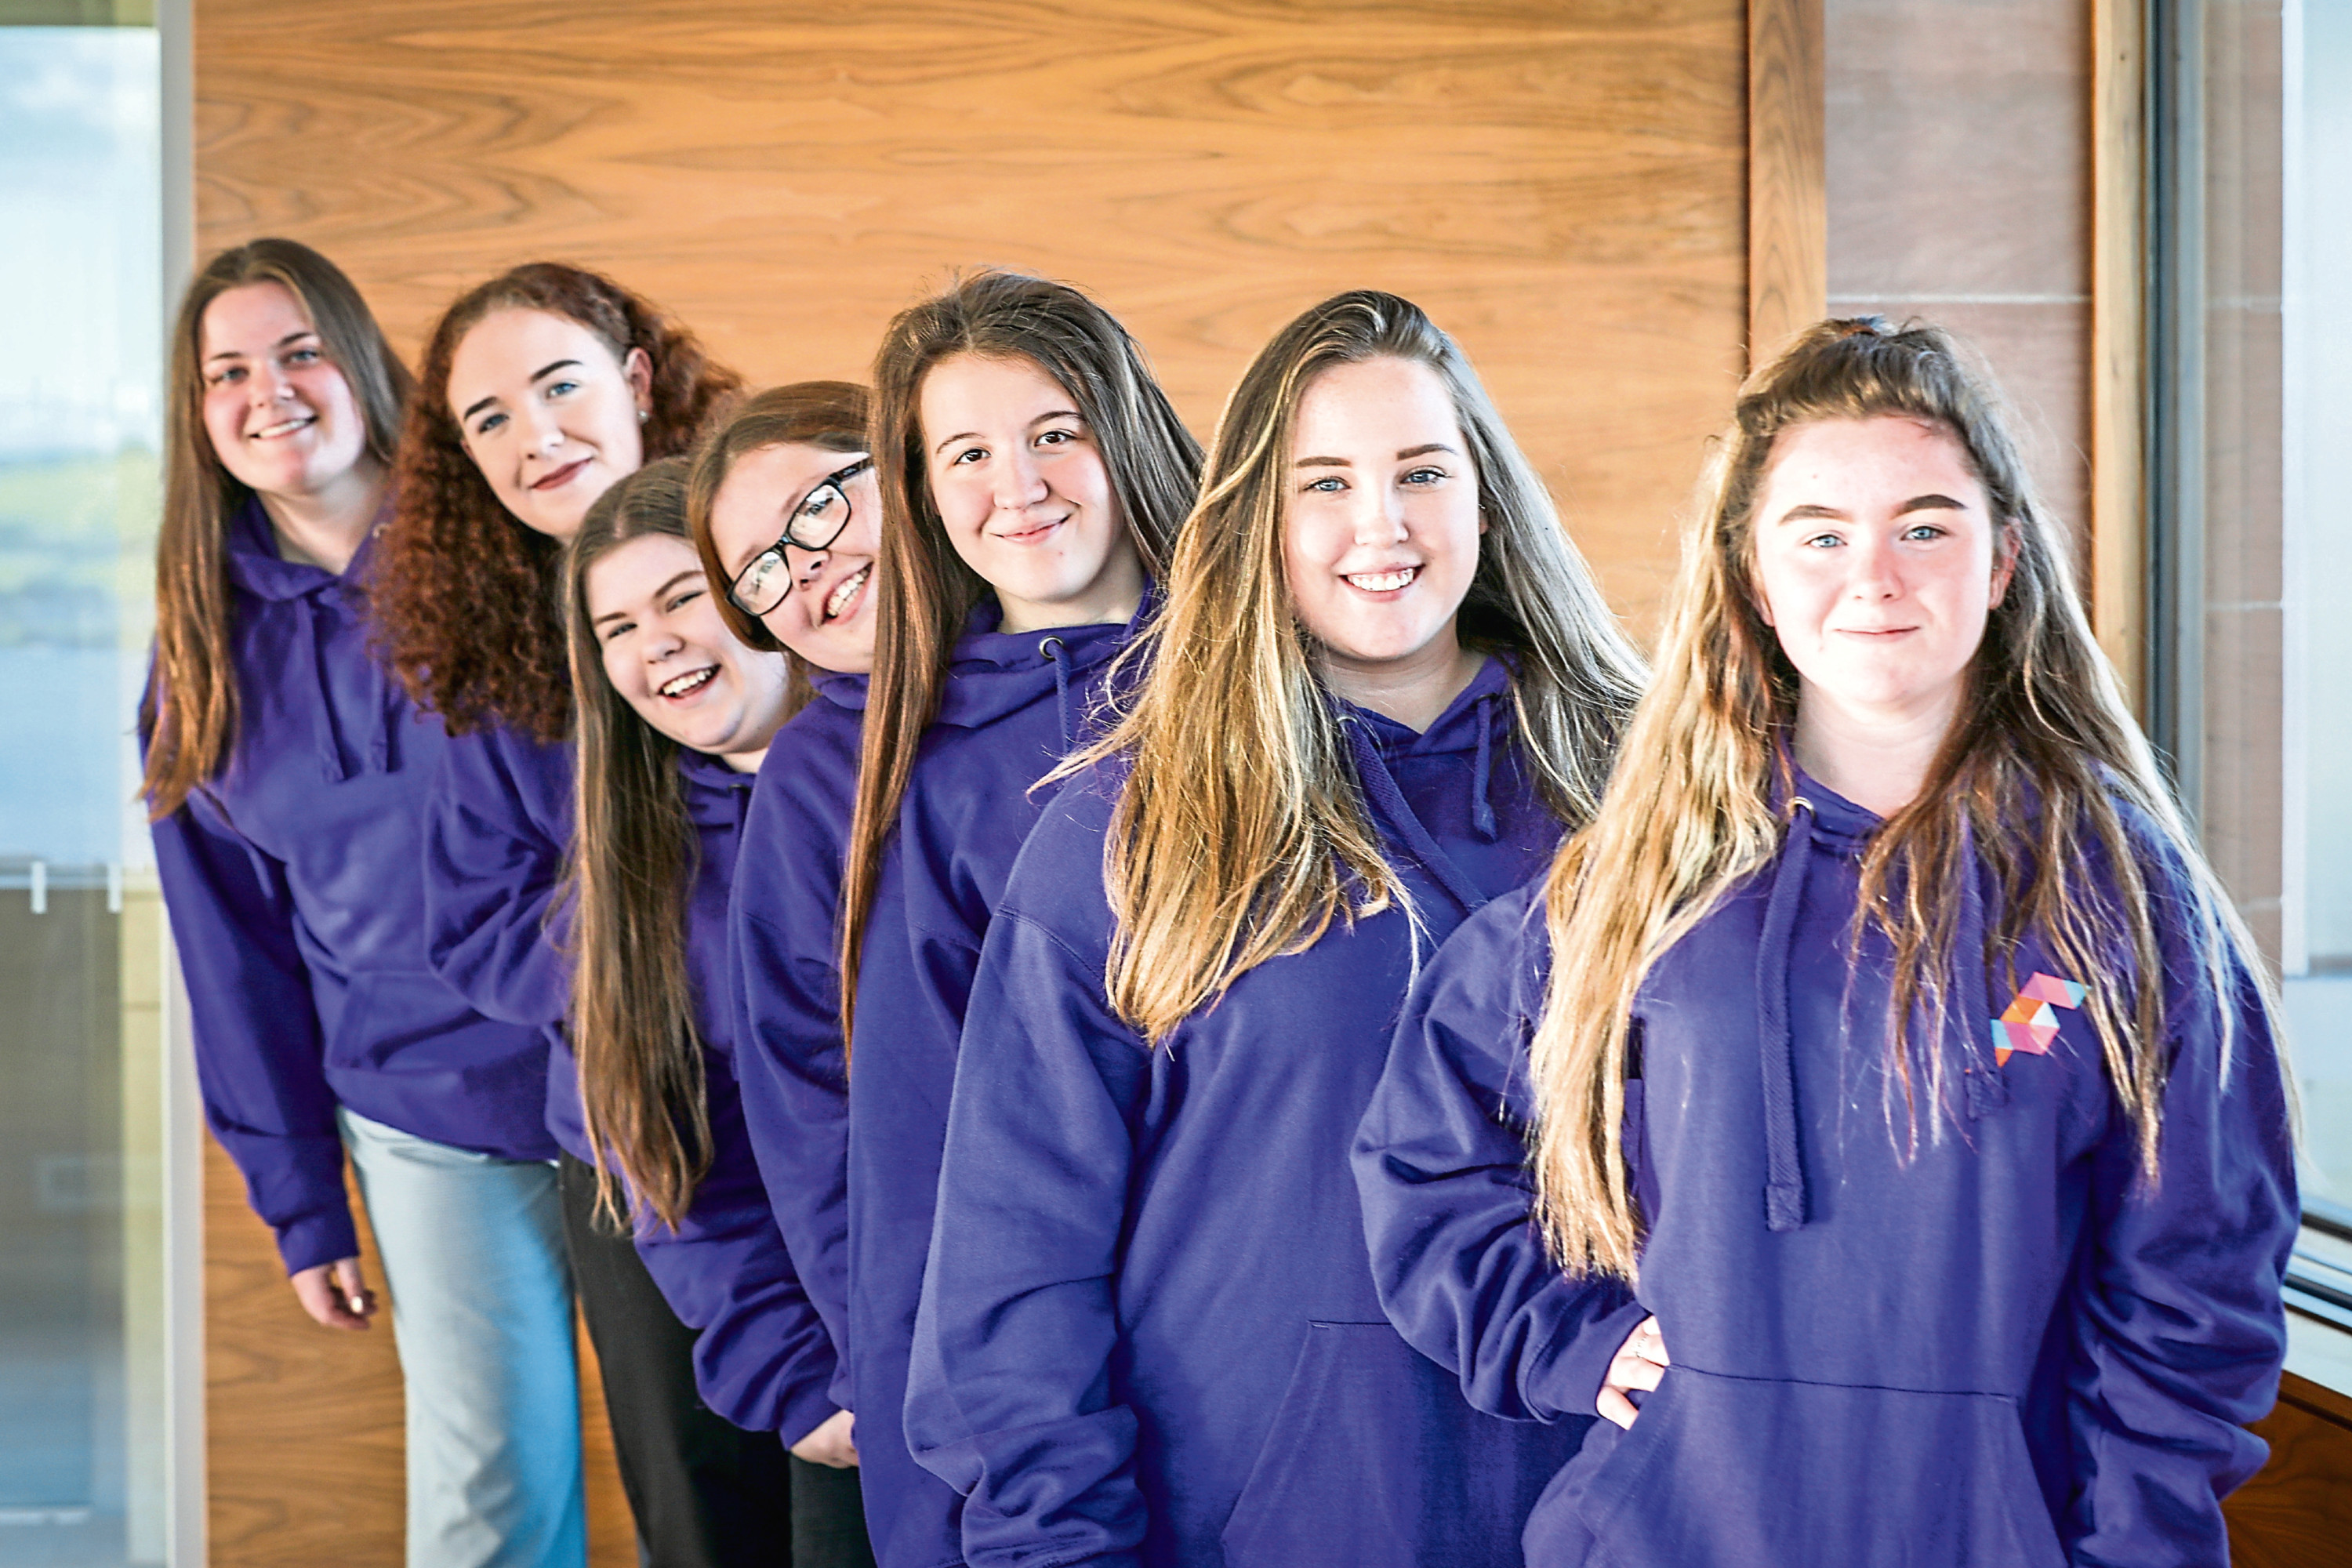 Pictured, front to back – Kai Grier, Chloe Foy, Lauren Forbes, Andrea Panton, Amanda Leigh Hay, Megan Hay and Lisa Hendry